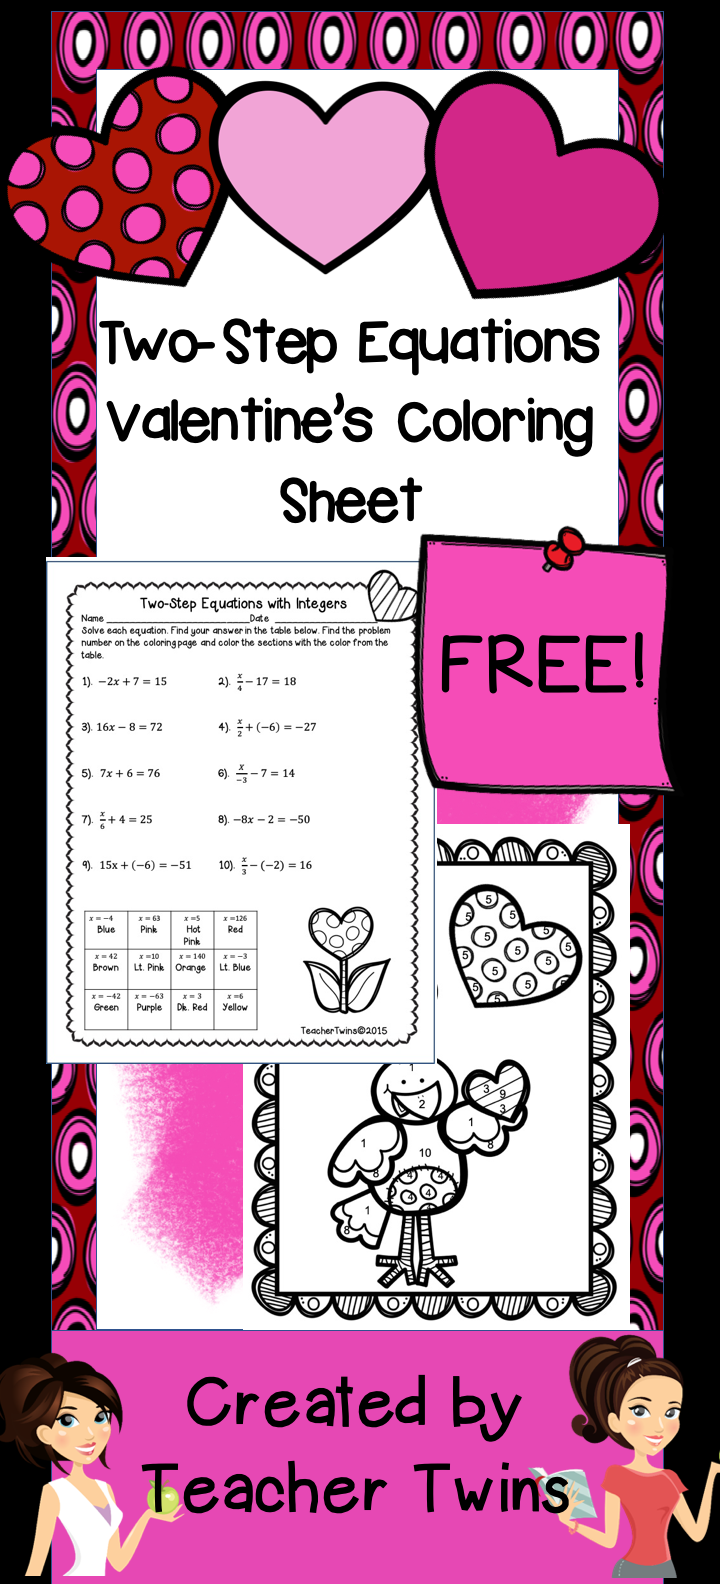 Valentine Coloring Math Worksheet It Consists Of Two Step Equations With Integers Students Solve The Equation A Two Step Equations Color Worksheets Equations